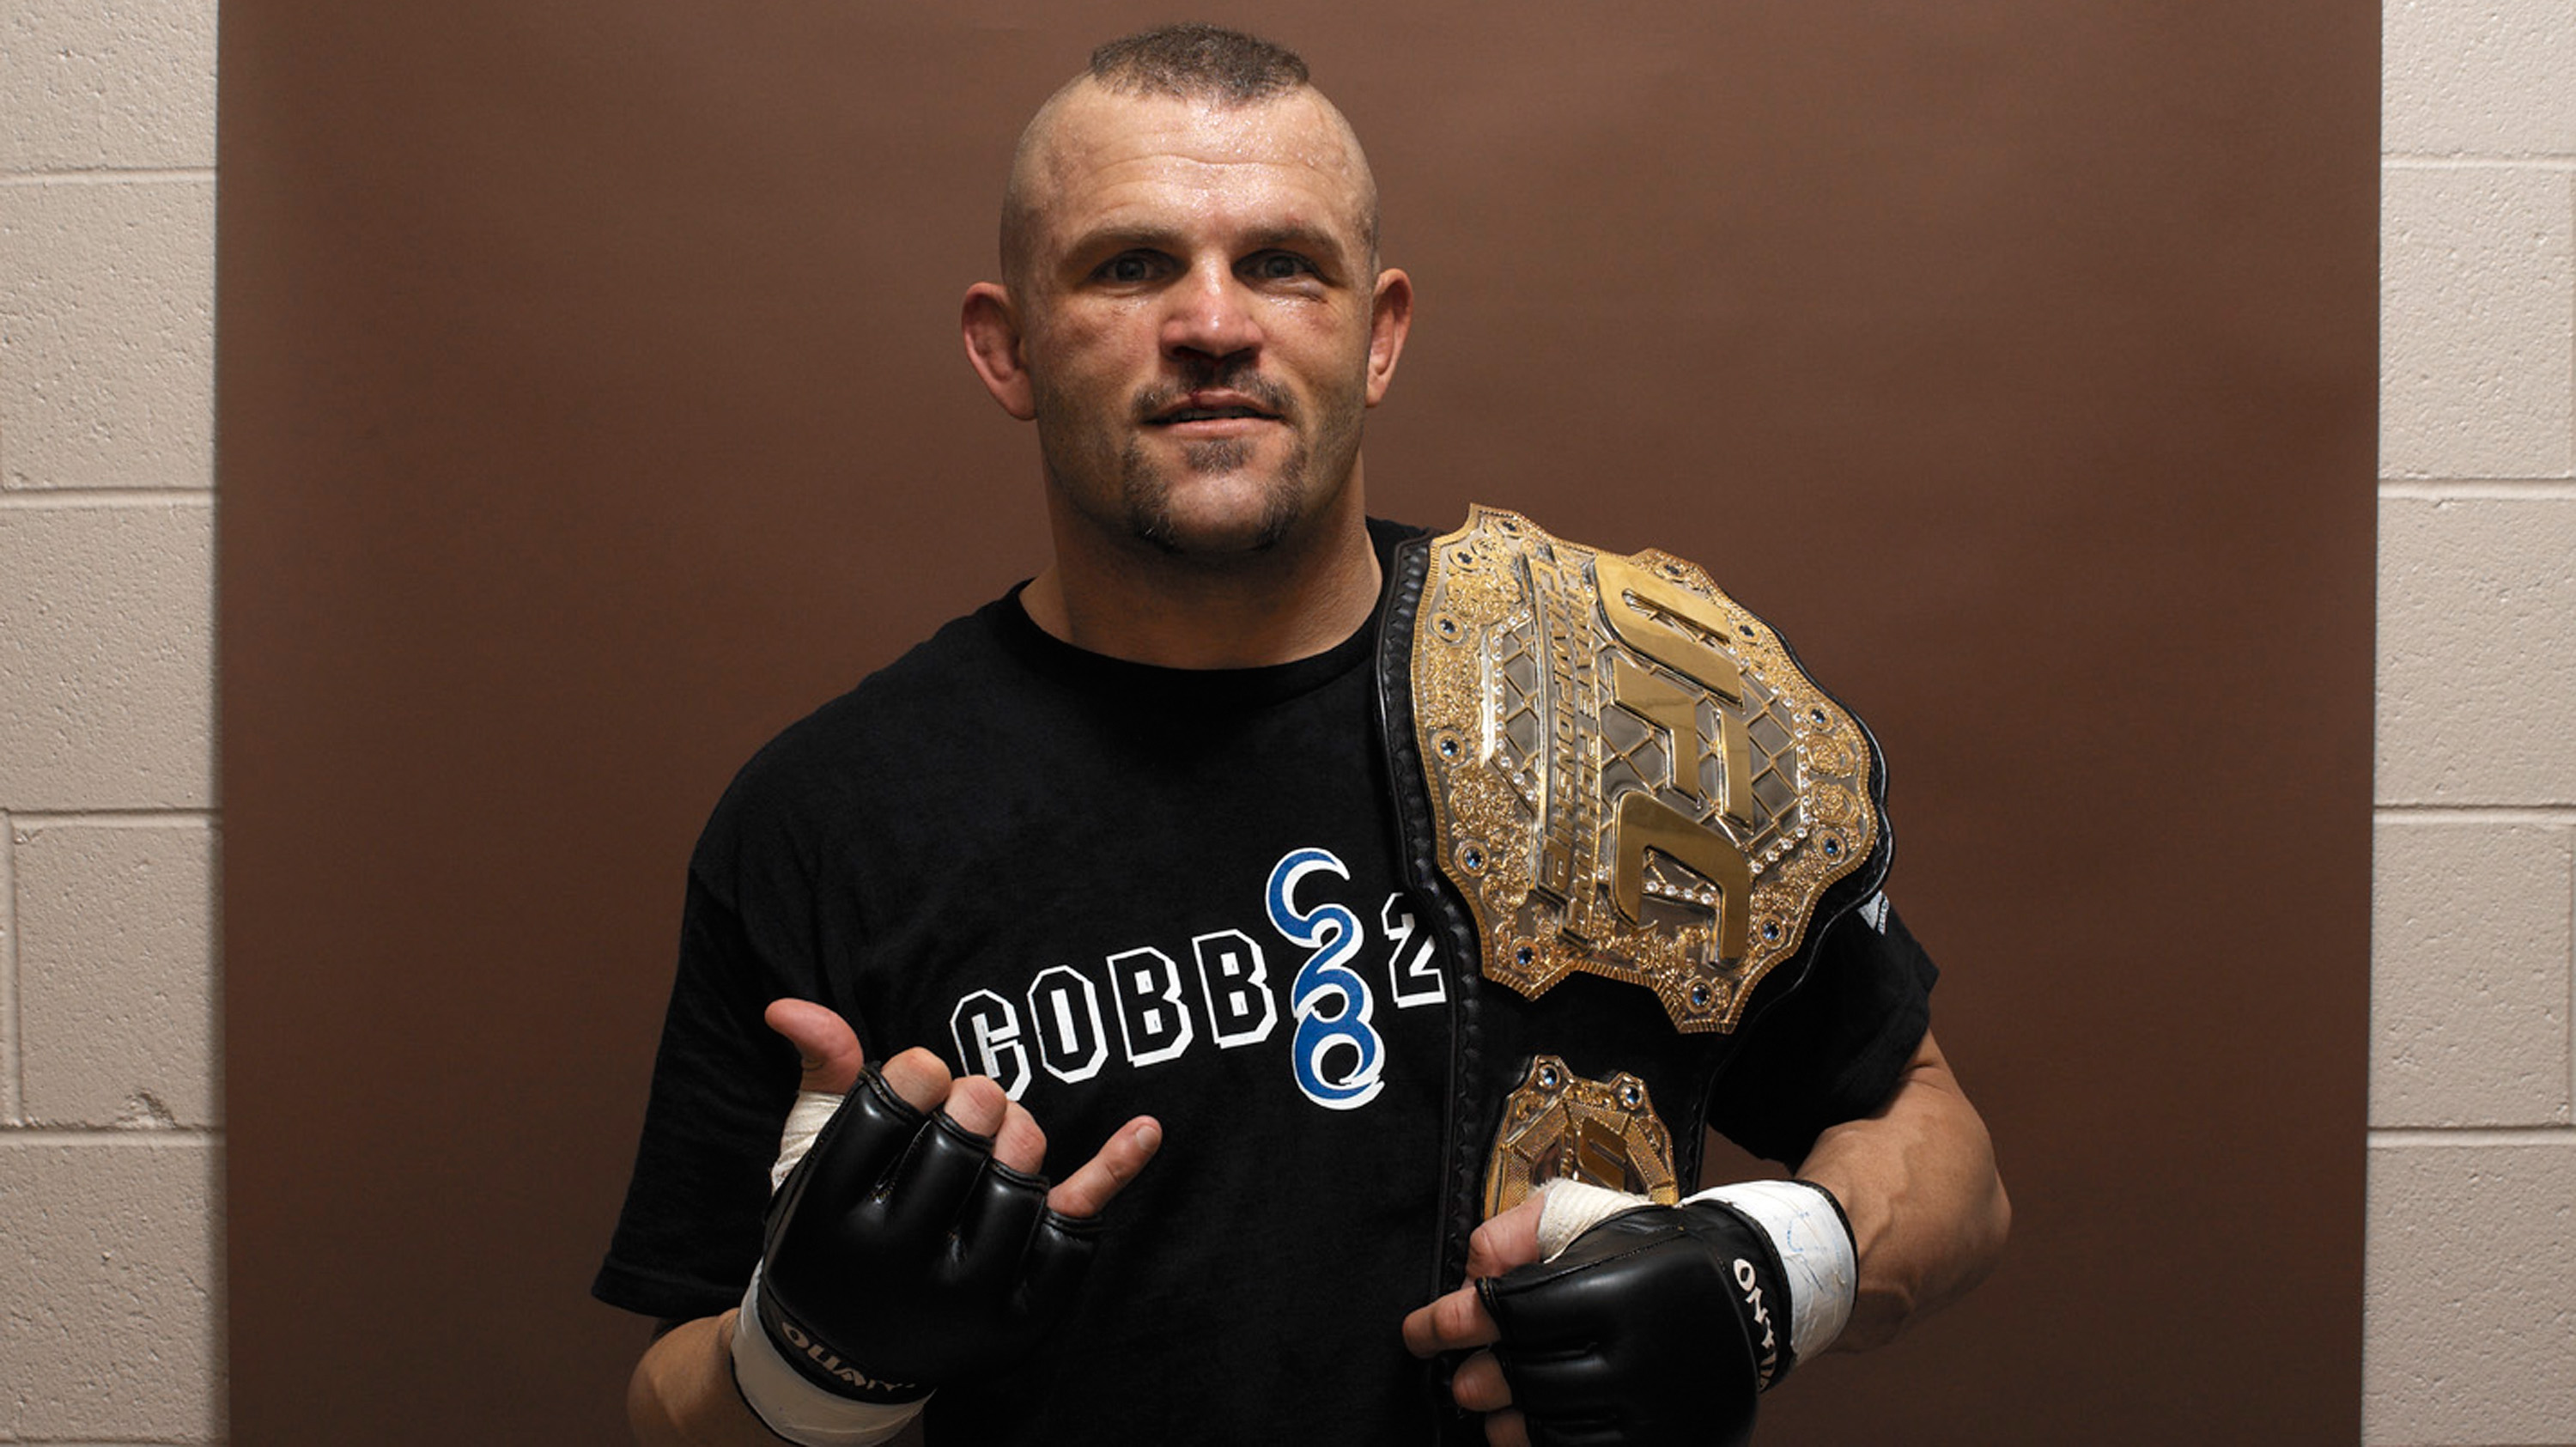 Liddell won his light heavyweight title at UFC 52 and defended it successfully 4 times (Photo credit: Kevin Lynch)